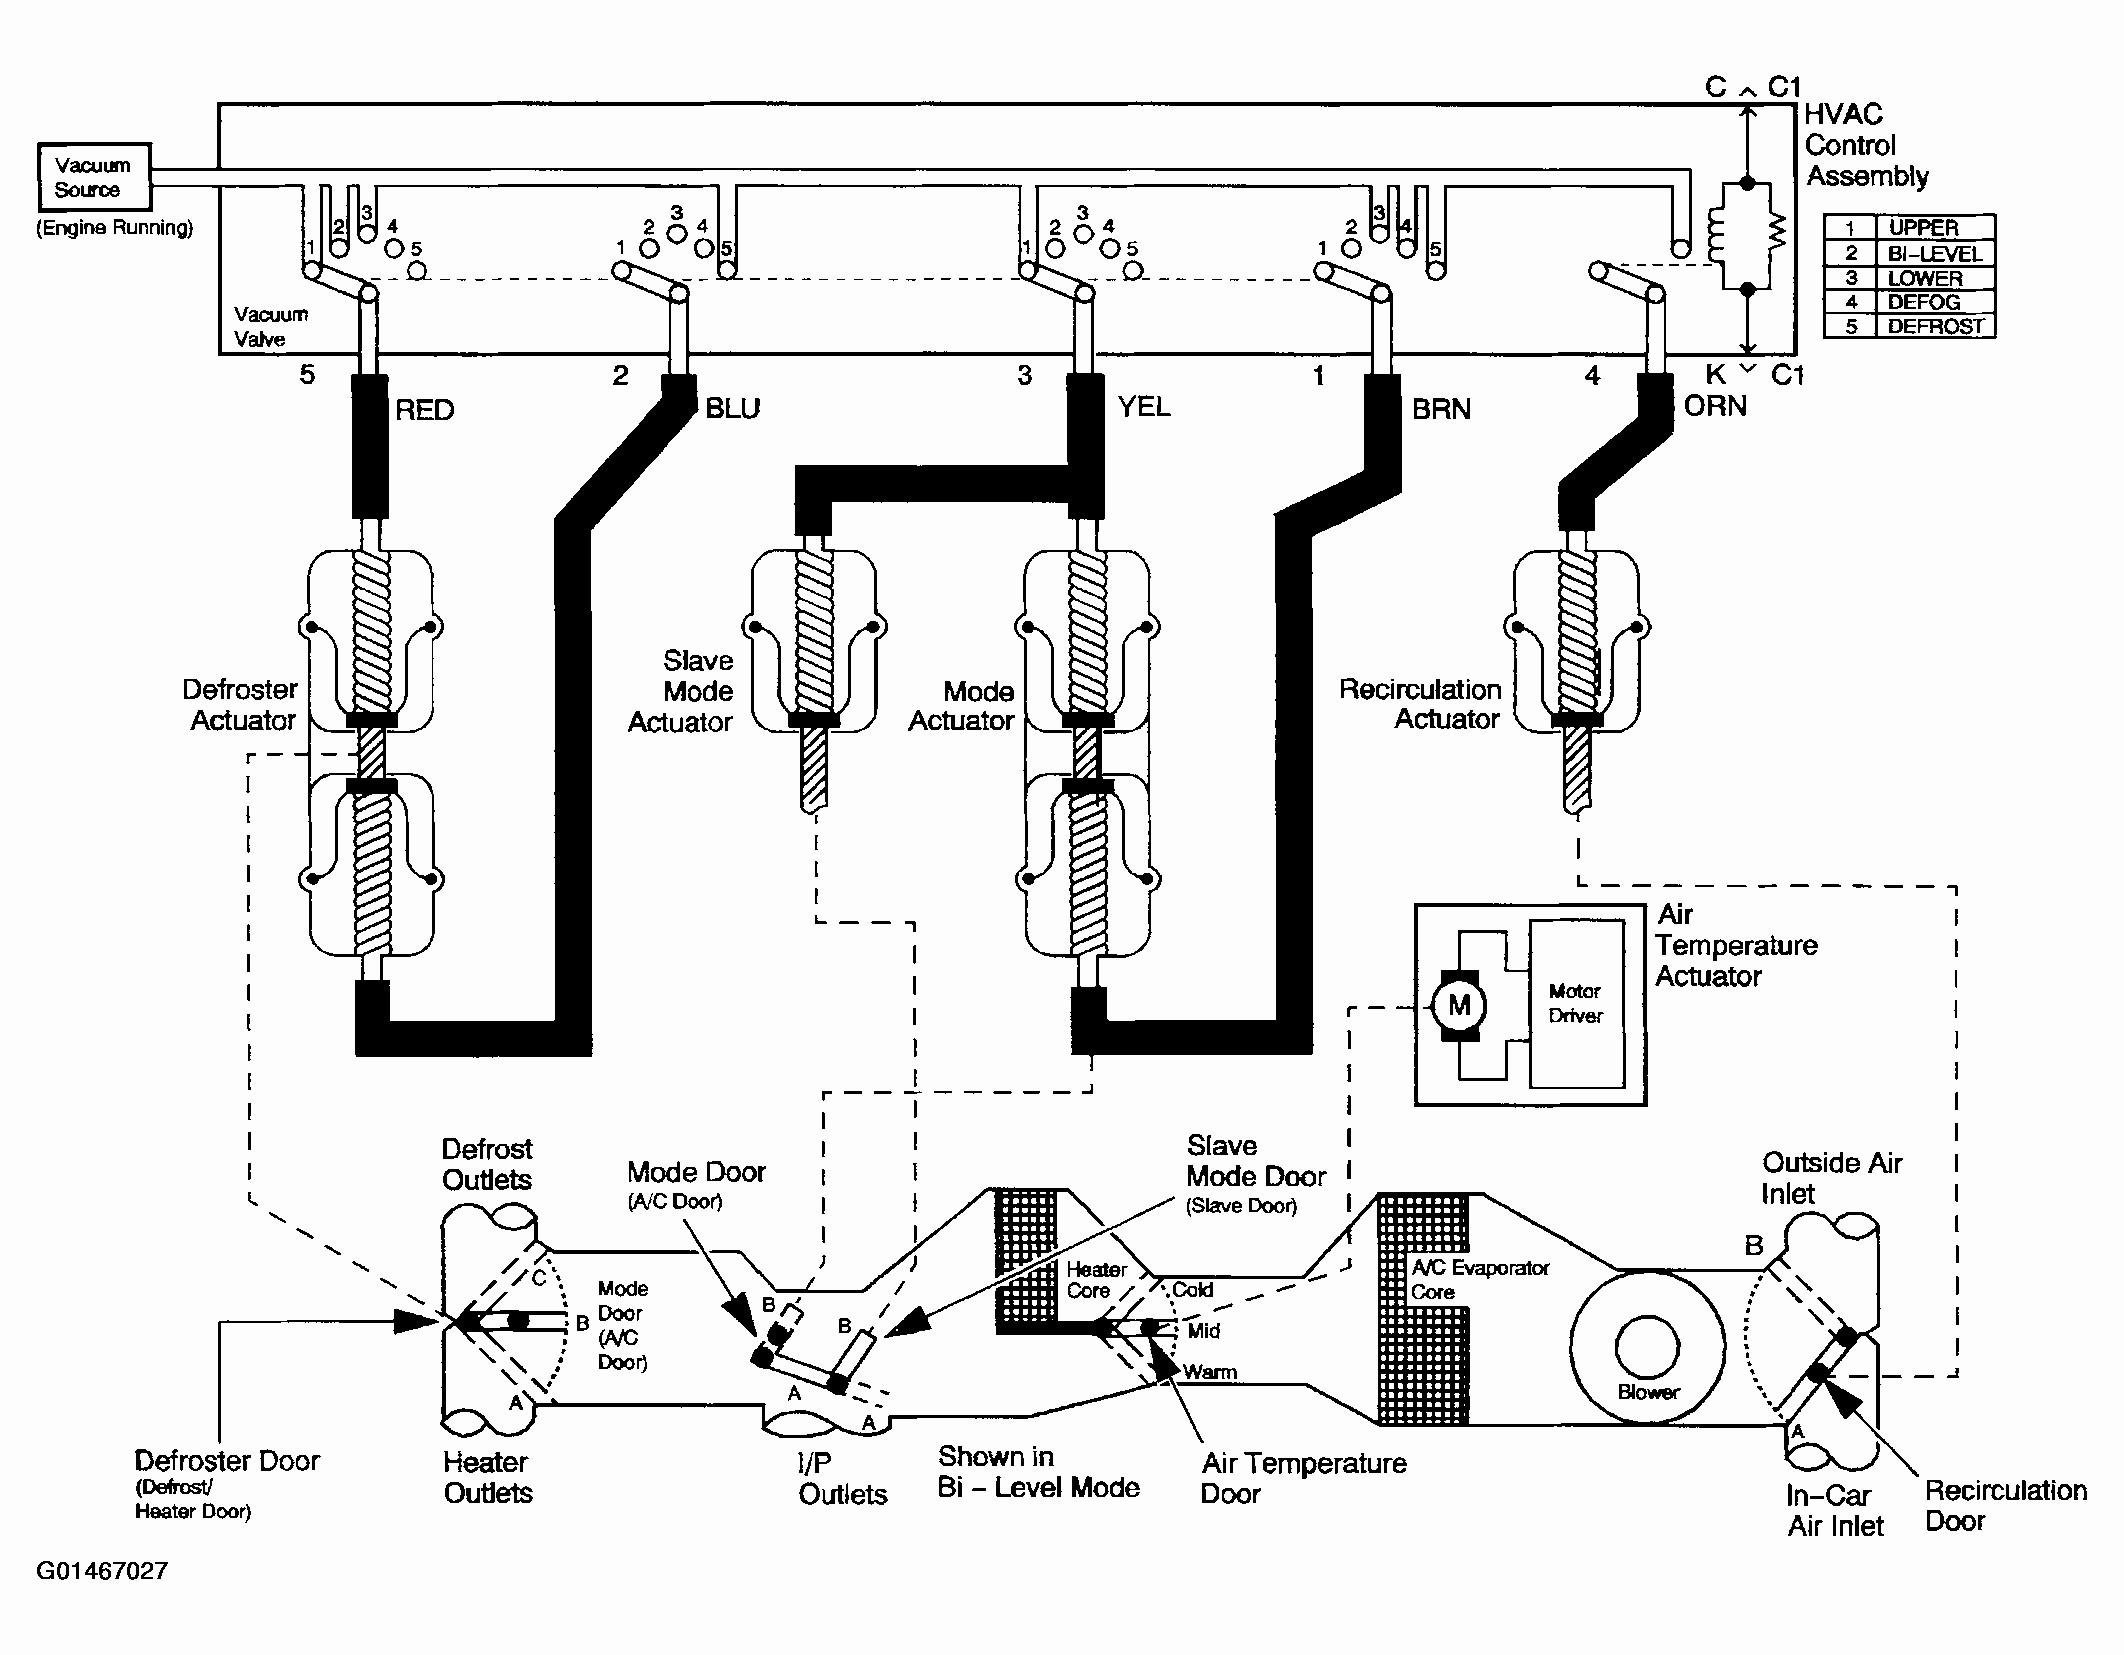 s10 2 2 engine diagram 9 artatec automobile de \u2022chevy s10 2 2 engine diagram 1996 head wiring library rh 8 seimapping org 2000 chevy